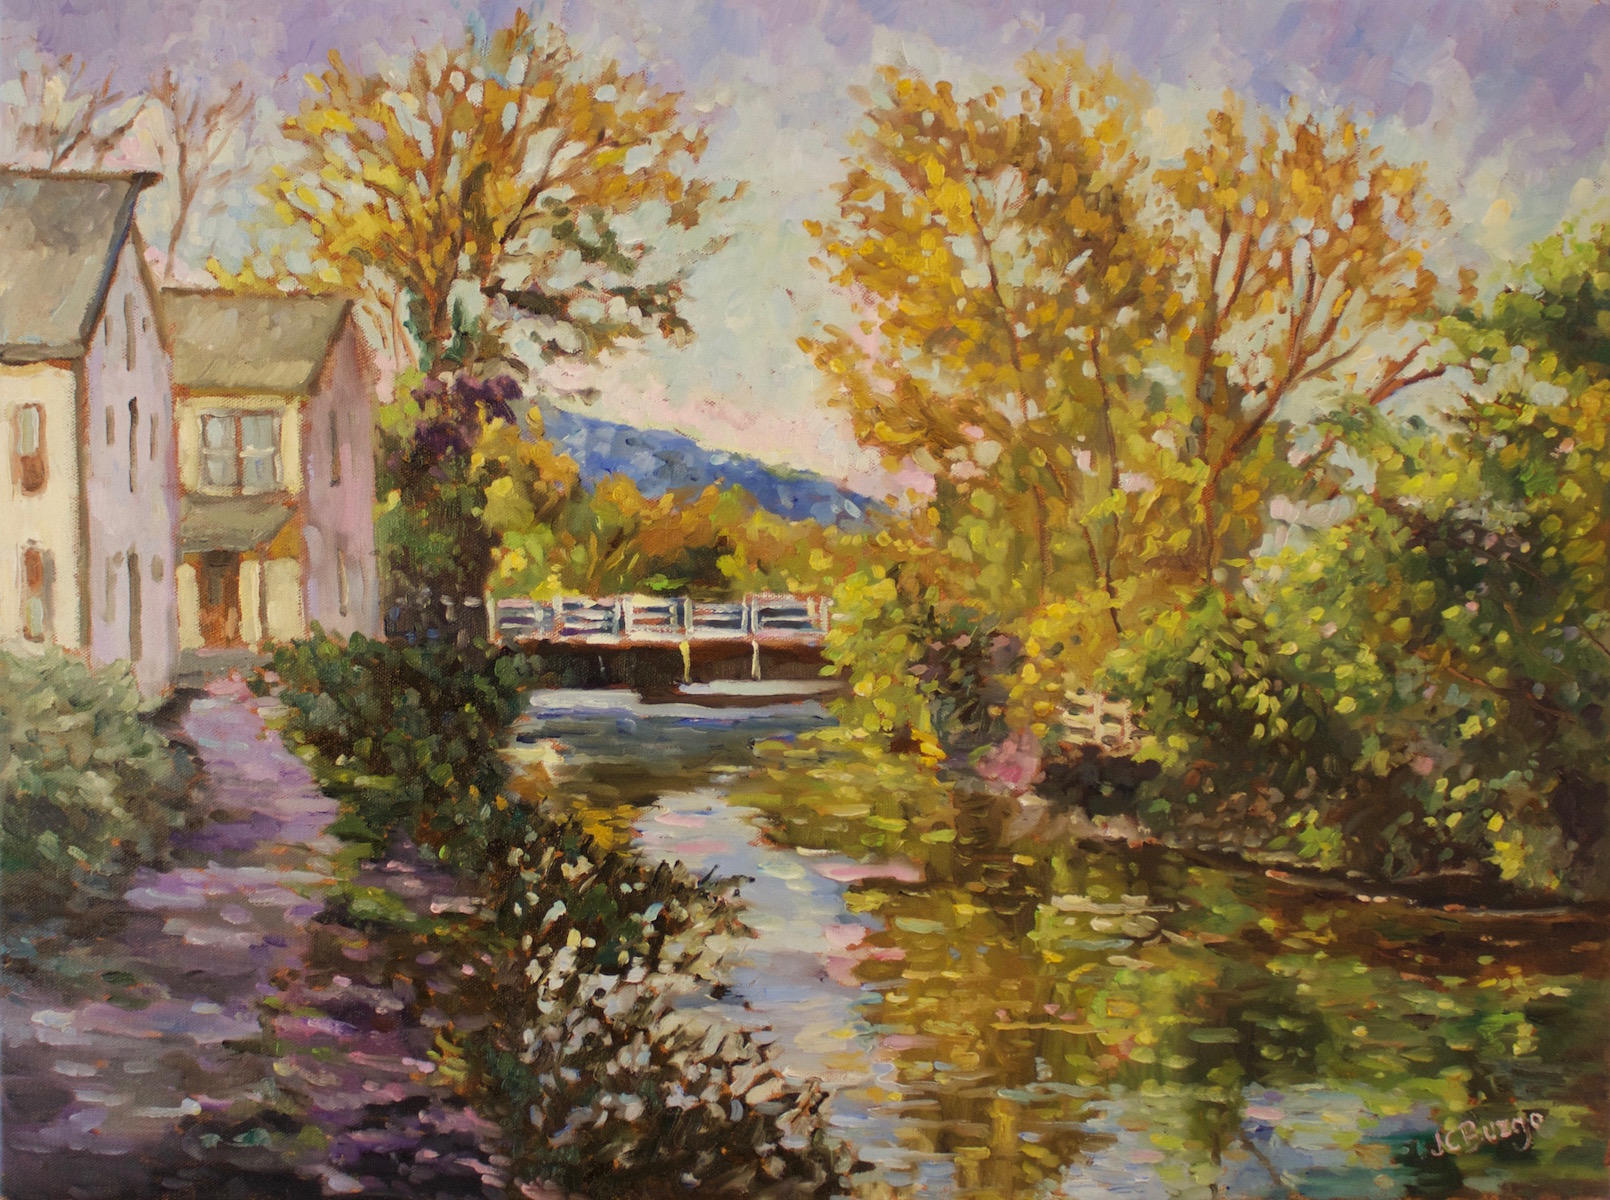 Canal at Morning 18x24 oil/canvas